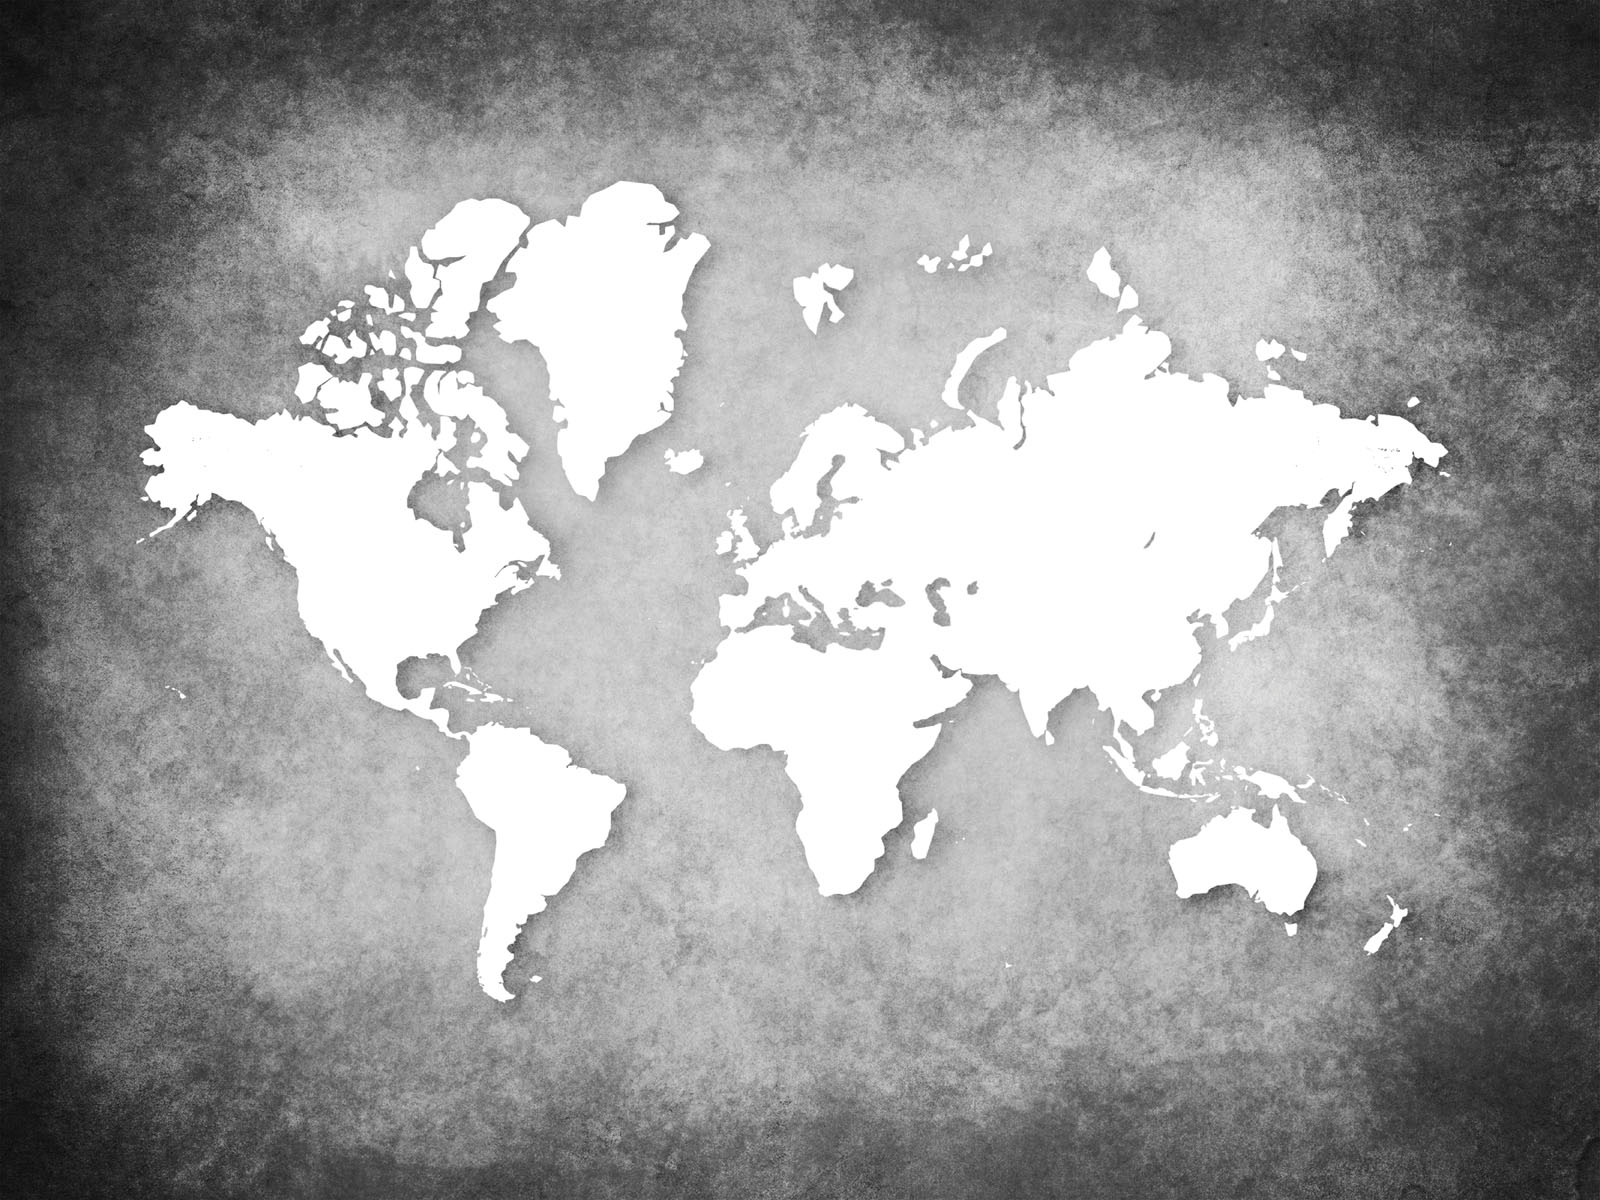 World map clipart for powerpoint picture royalty free library World map clipart for powerpoint - ClipartFest picture royalty free library